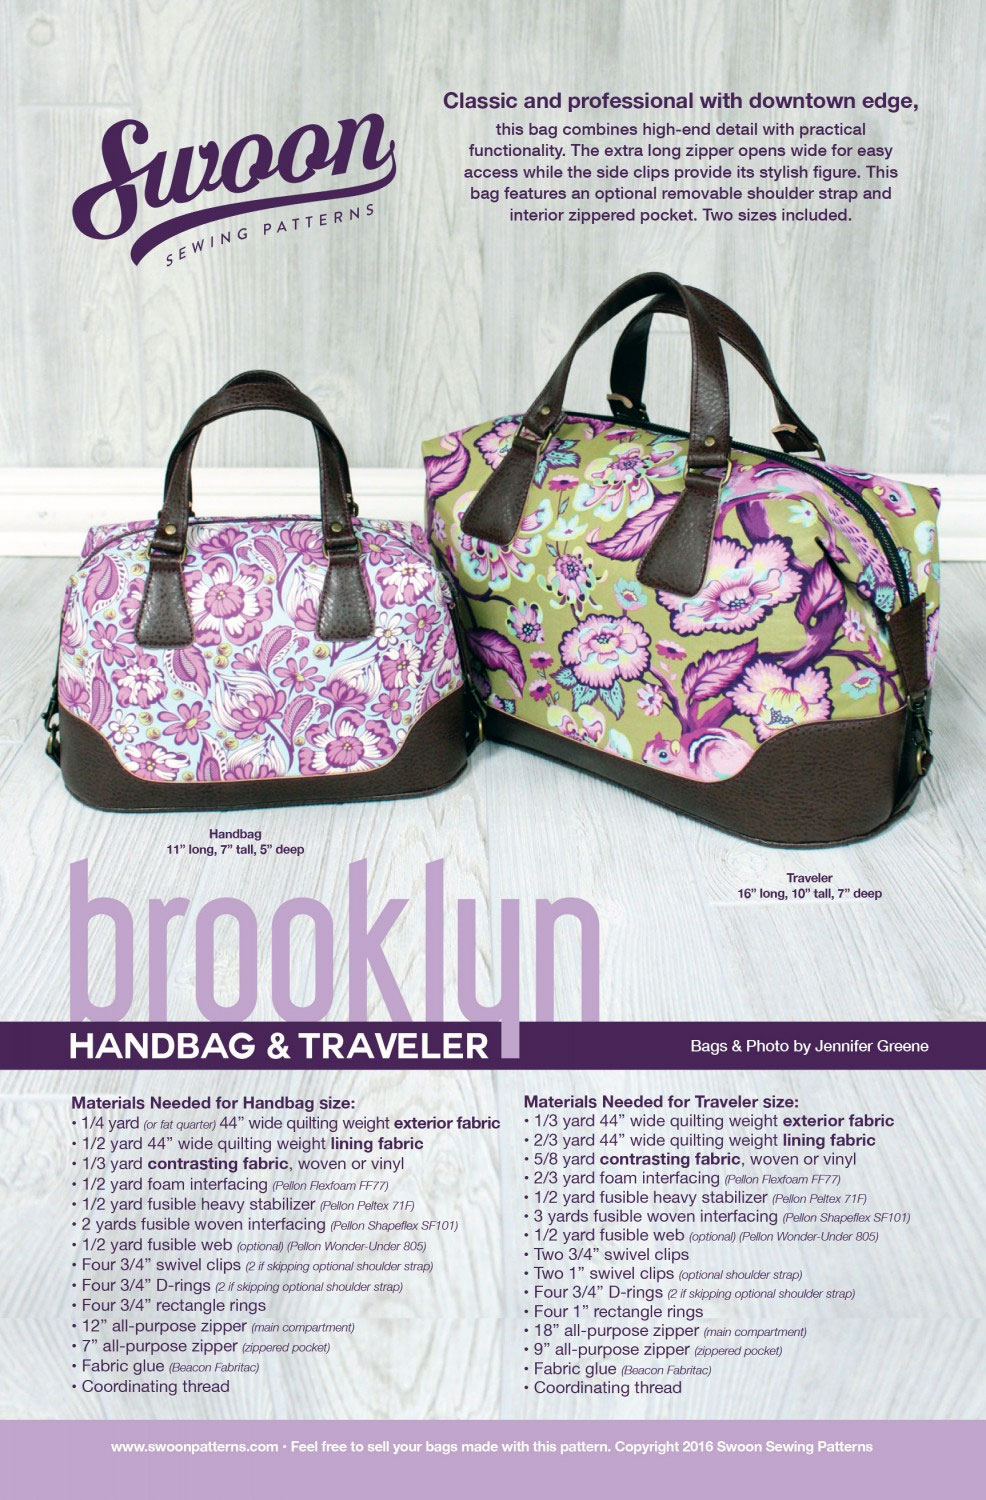 Brooklyn Handbag & Traveler sewing pattern from Swoon